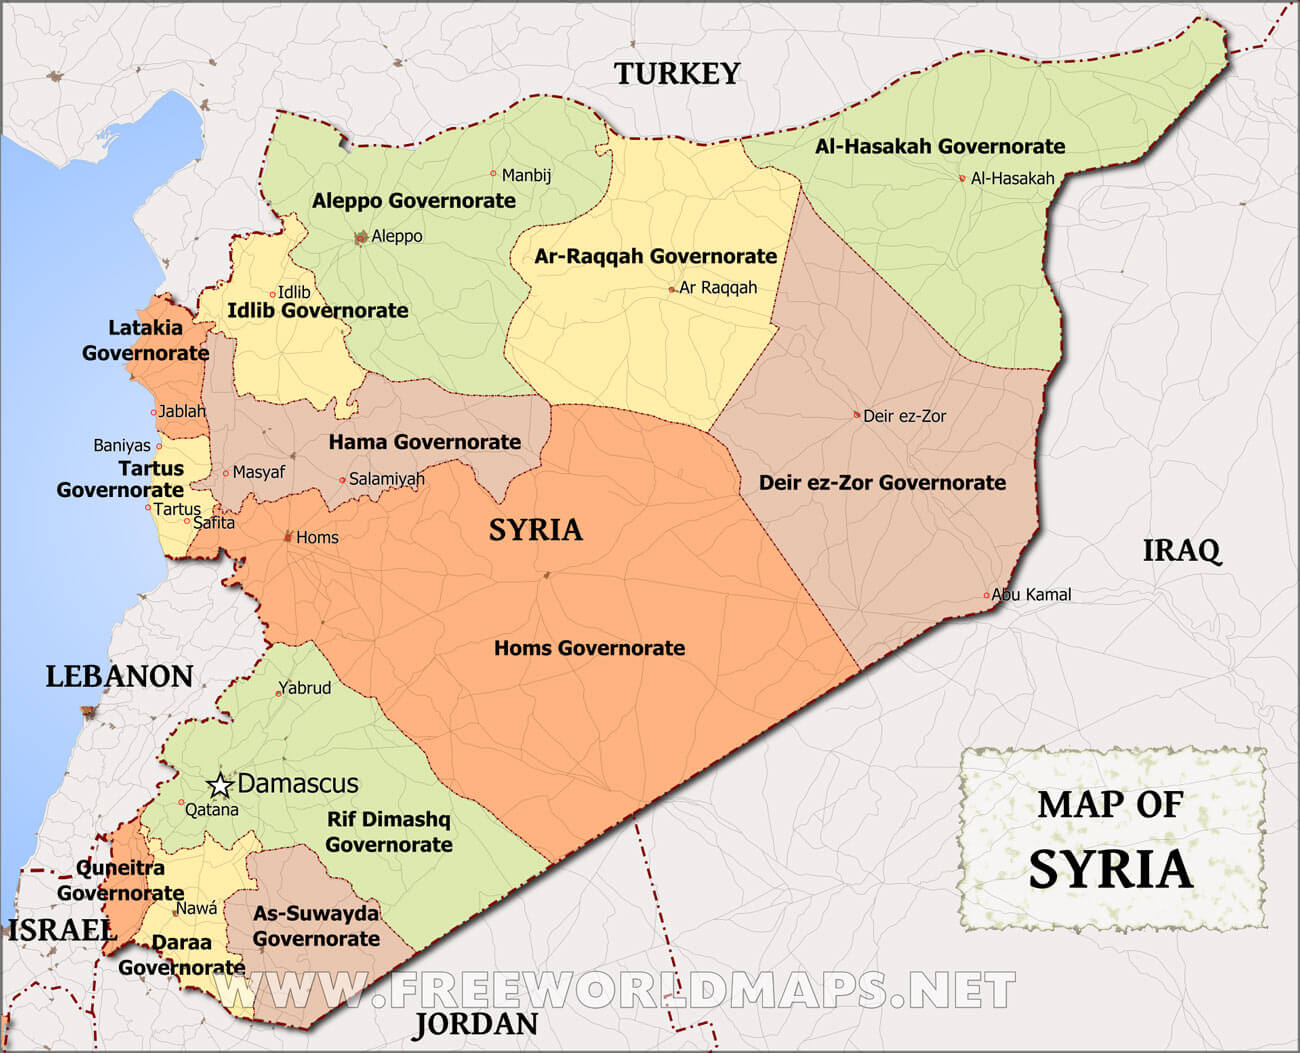 Syria Map on athens map, mosul map, bursa map, syria map, middle east map, isfahan map, tel aviv map, beirut map, latakia map, benghazi map, antioch map, jerusalem map, medina map, amman map, ankara map, sinai peninsula map, basra map, jericho map, tyre map, catal huyuk map,